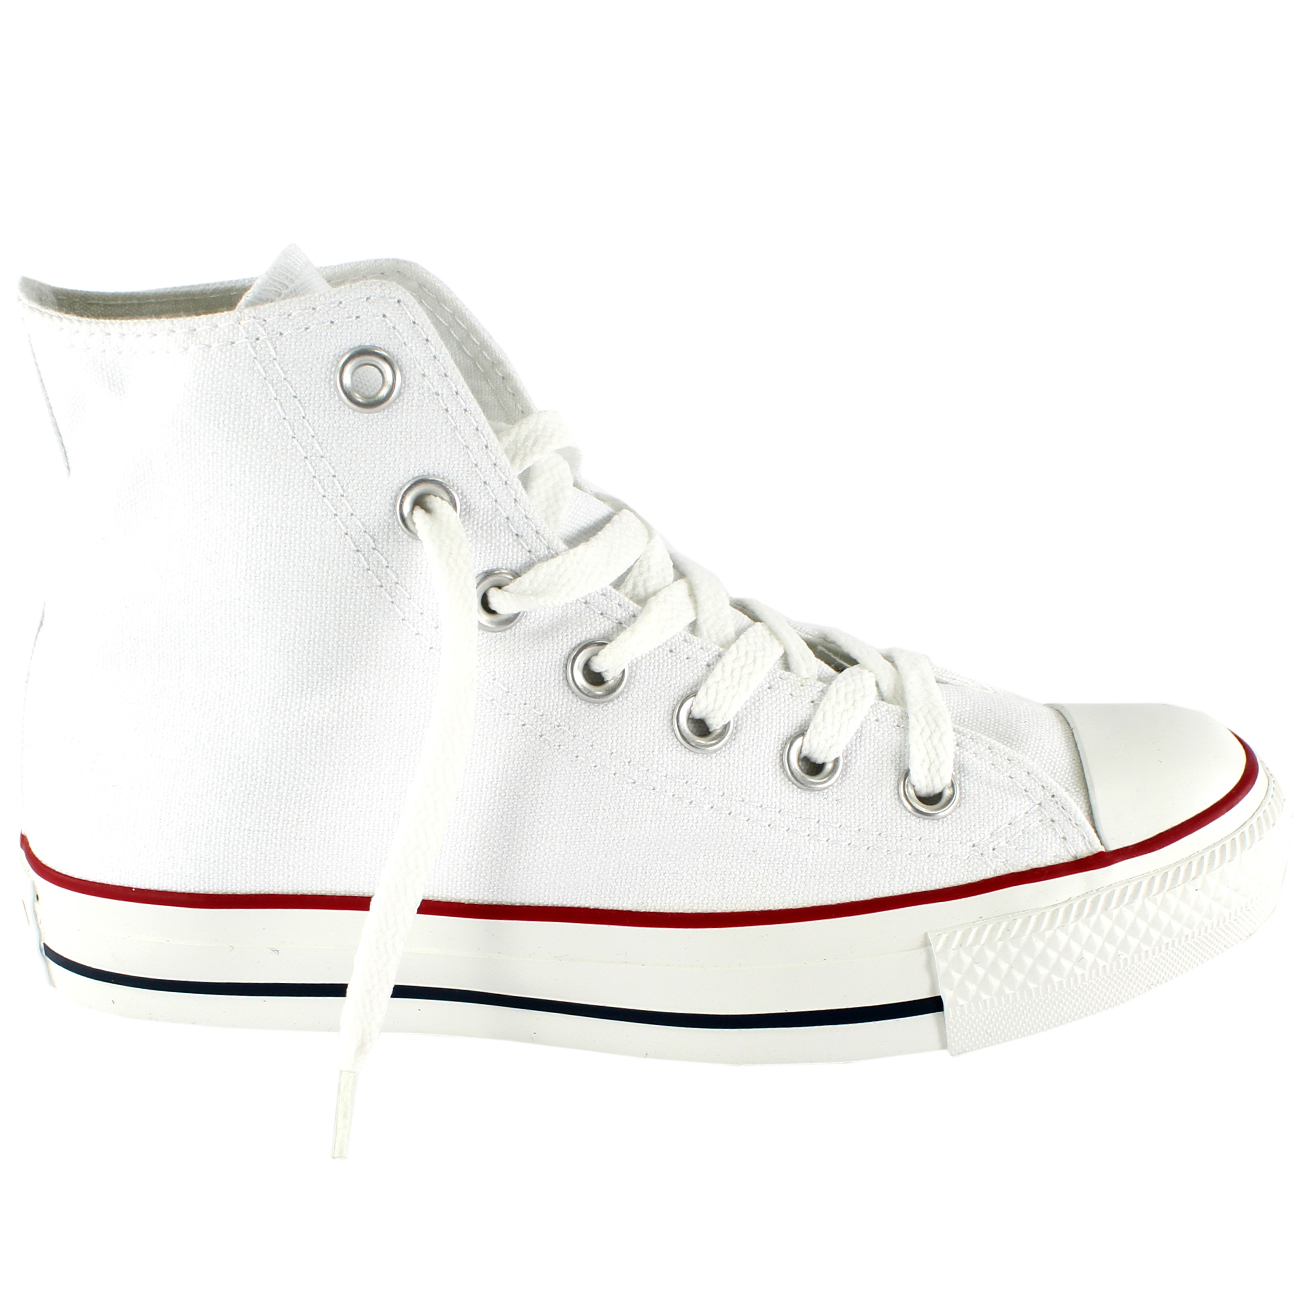 Zapatos señora zapatos Converse All star Hi High Top Top Top Chuck Taylor zapatillas UE 35-43 c6de67